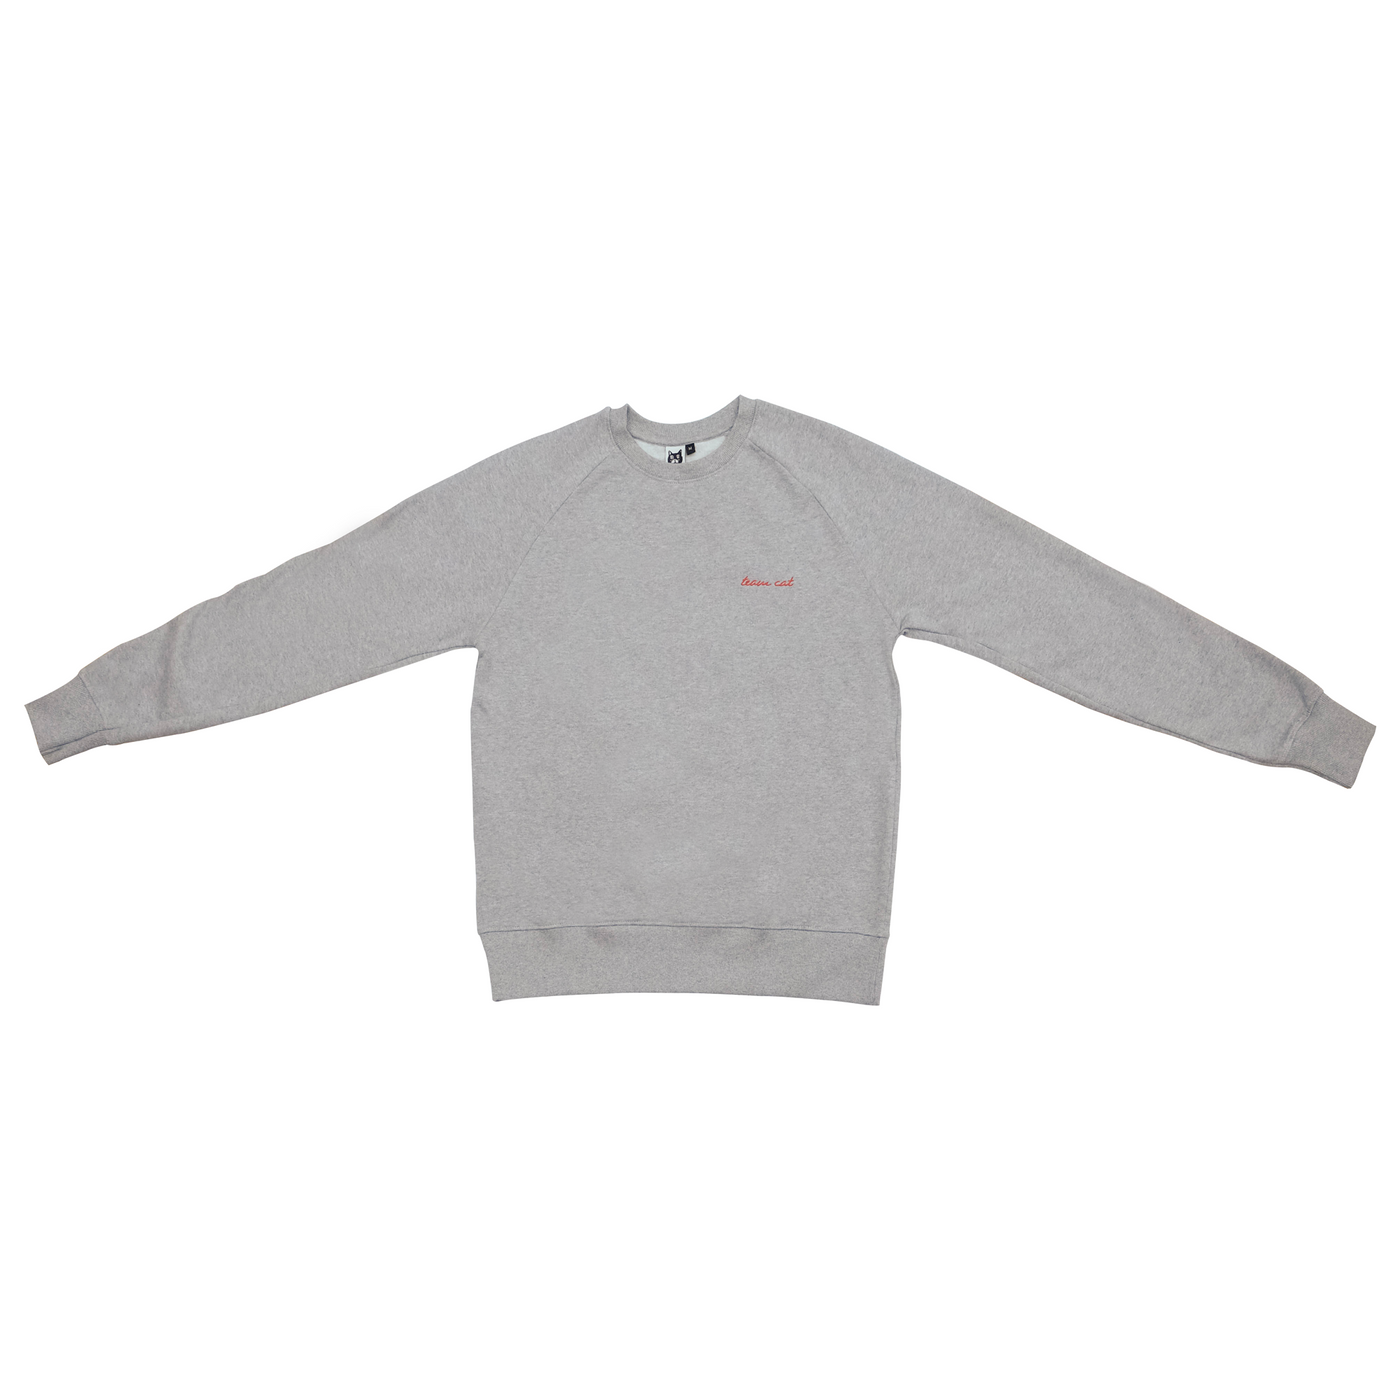 Team Cat Sweatshirt Grey/Red Stitching